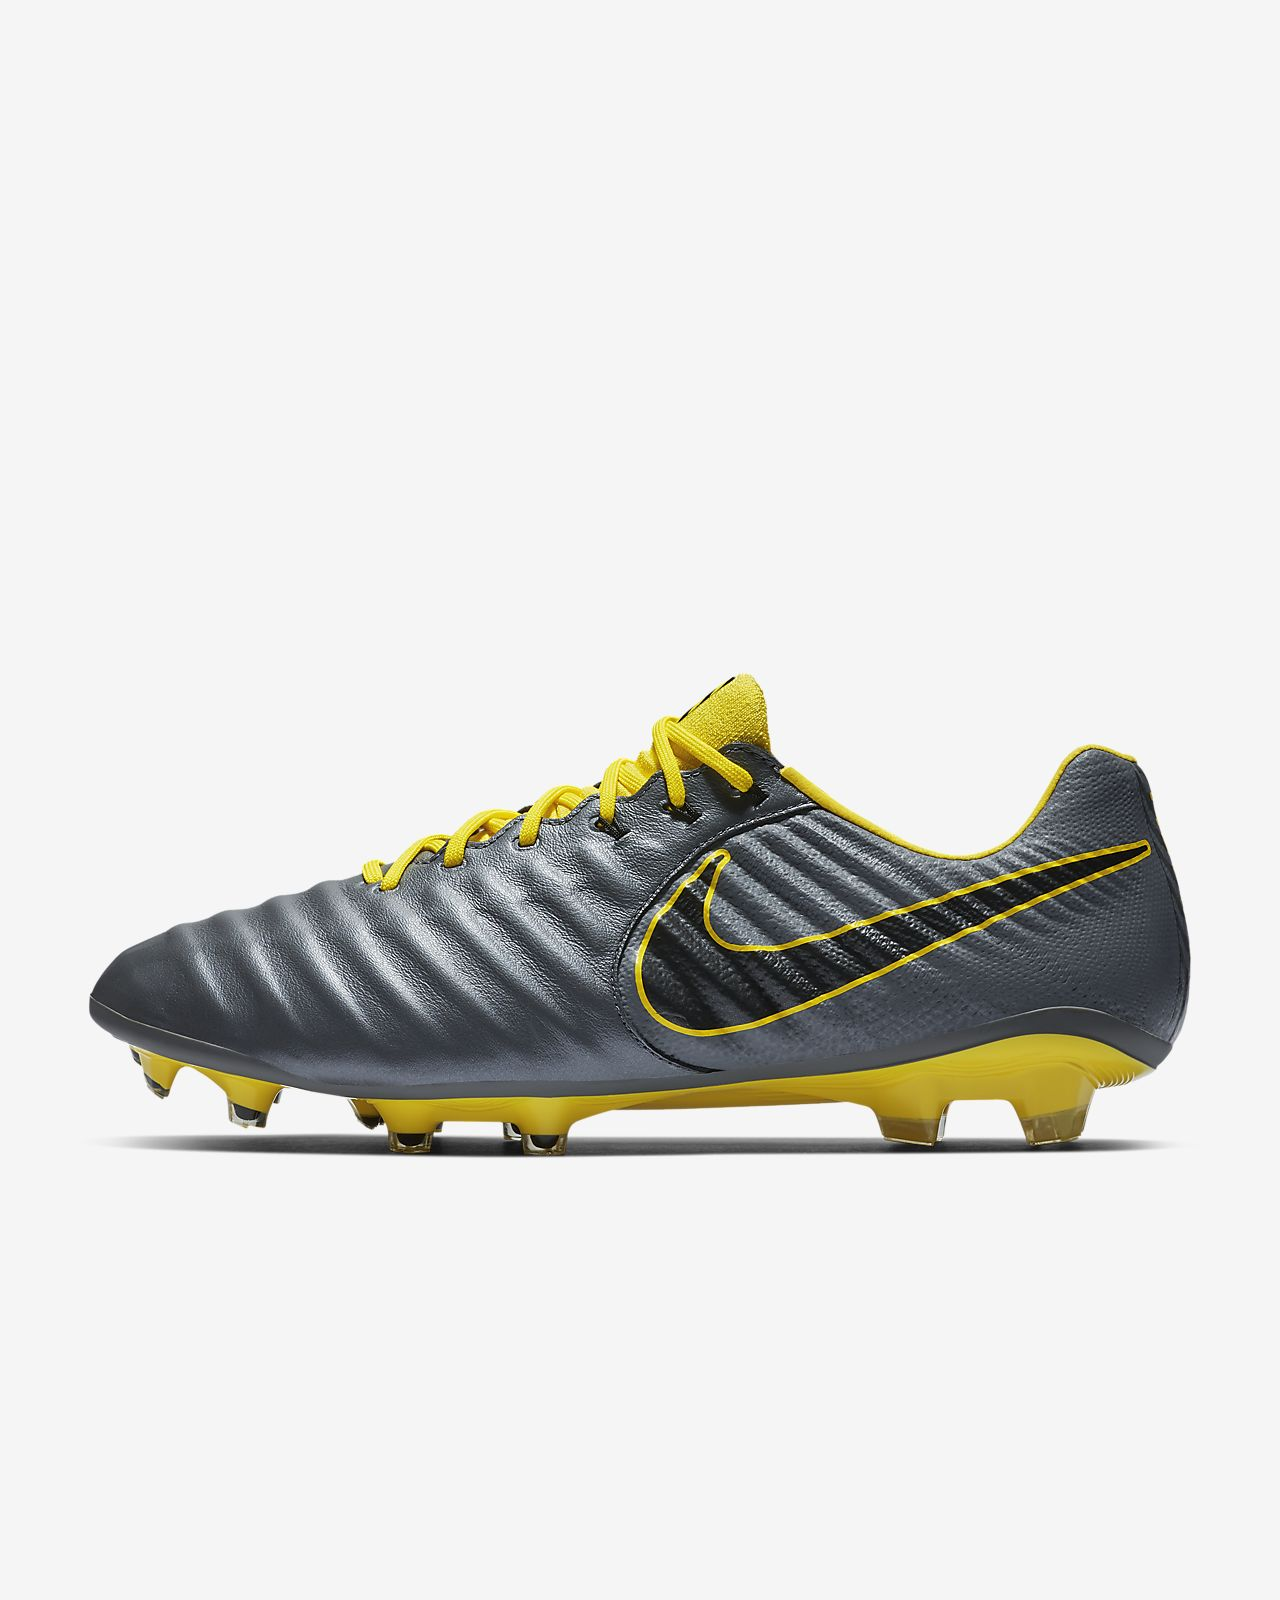 Nike Legend 7 Elite FG Game Over Firm-Ground Soccer Cleat